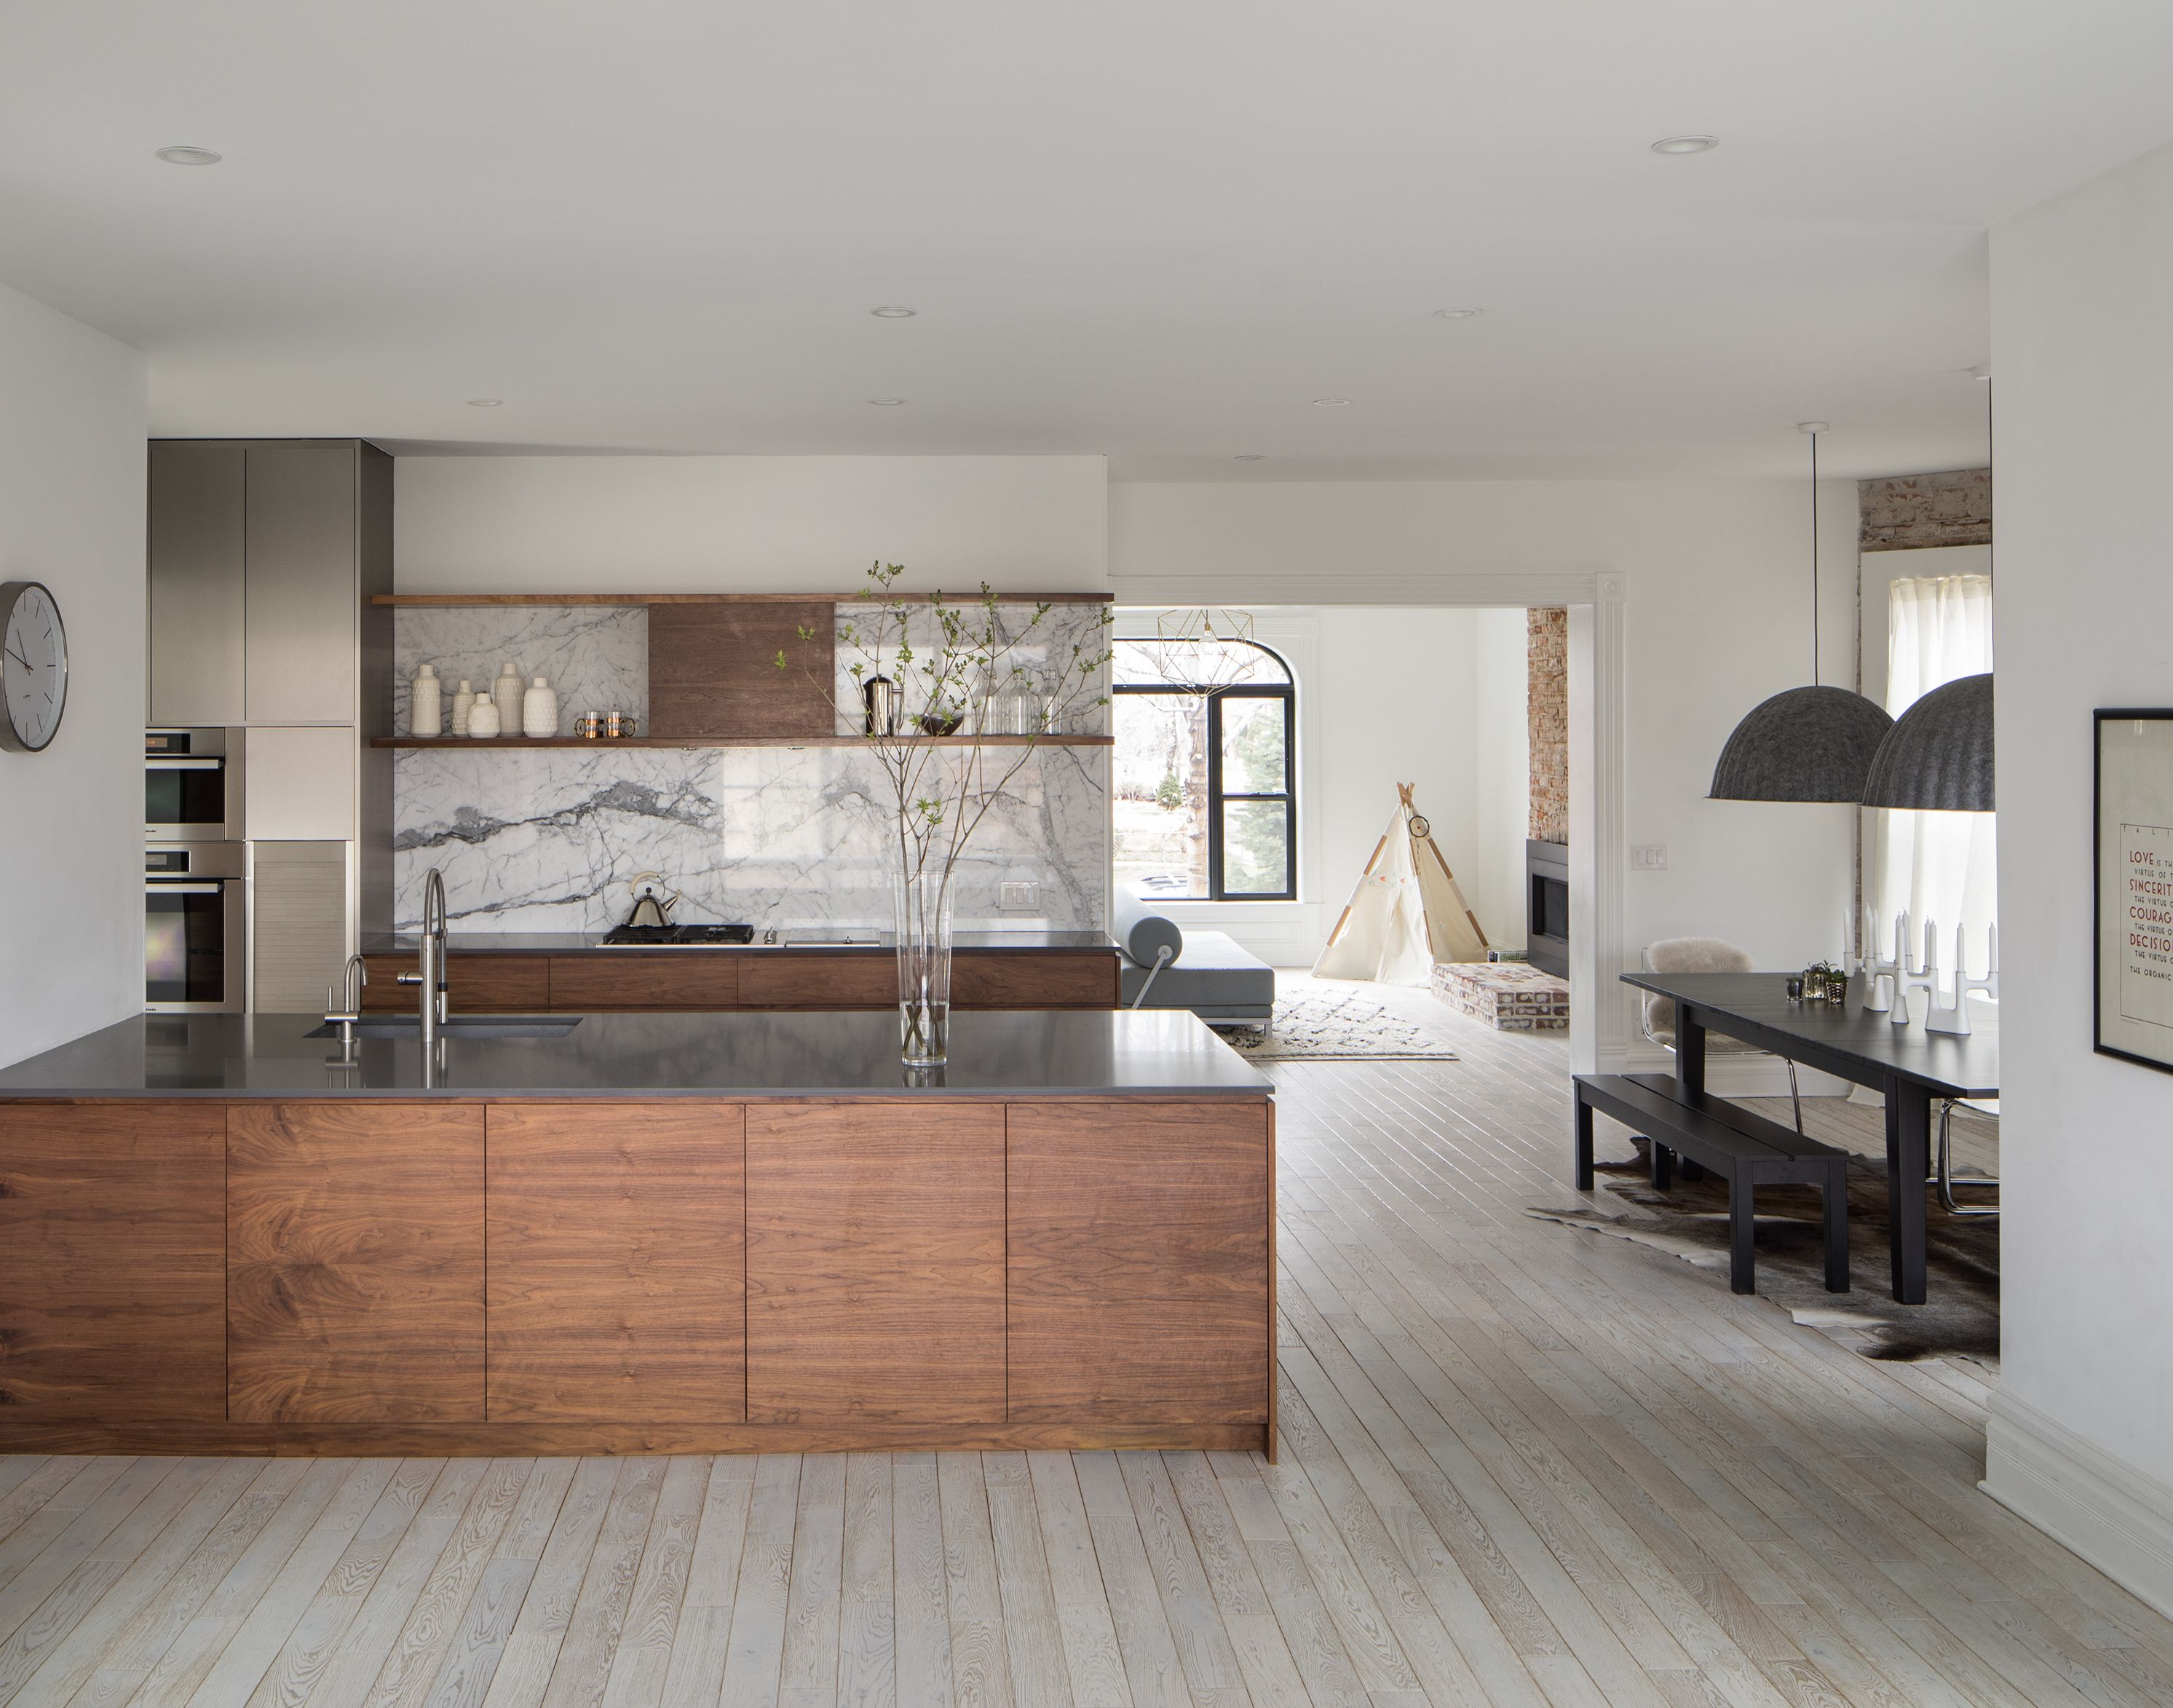 Best photos from thole residence stainless steel cabinets kitchen